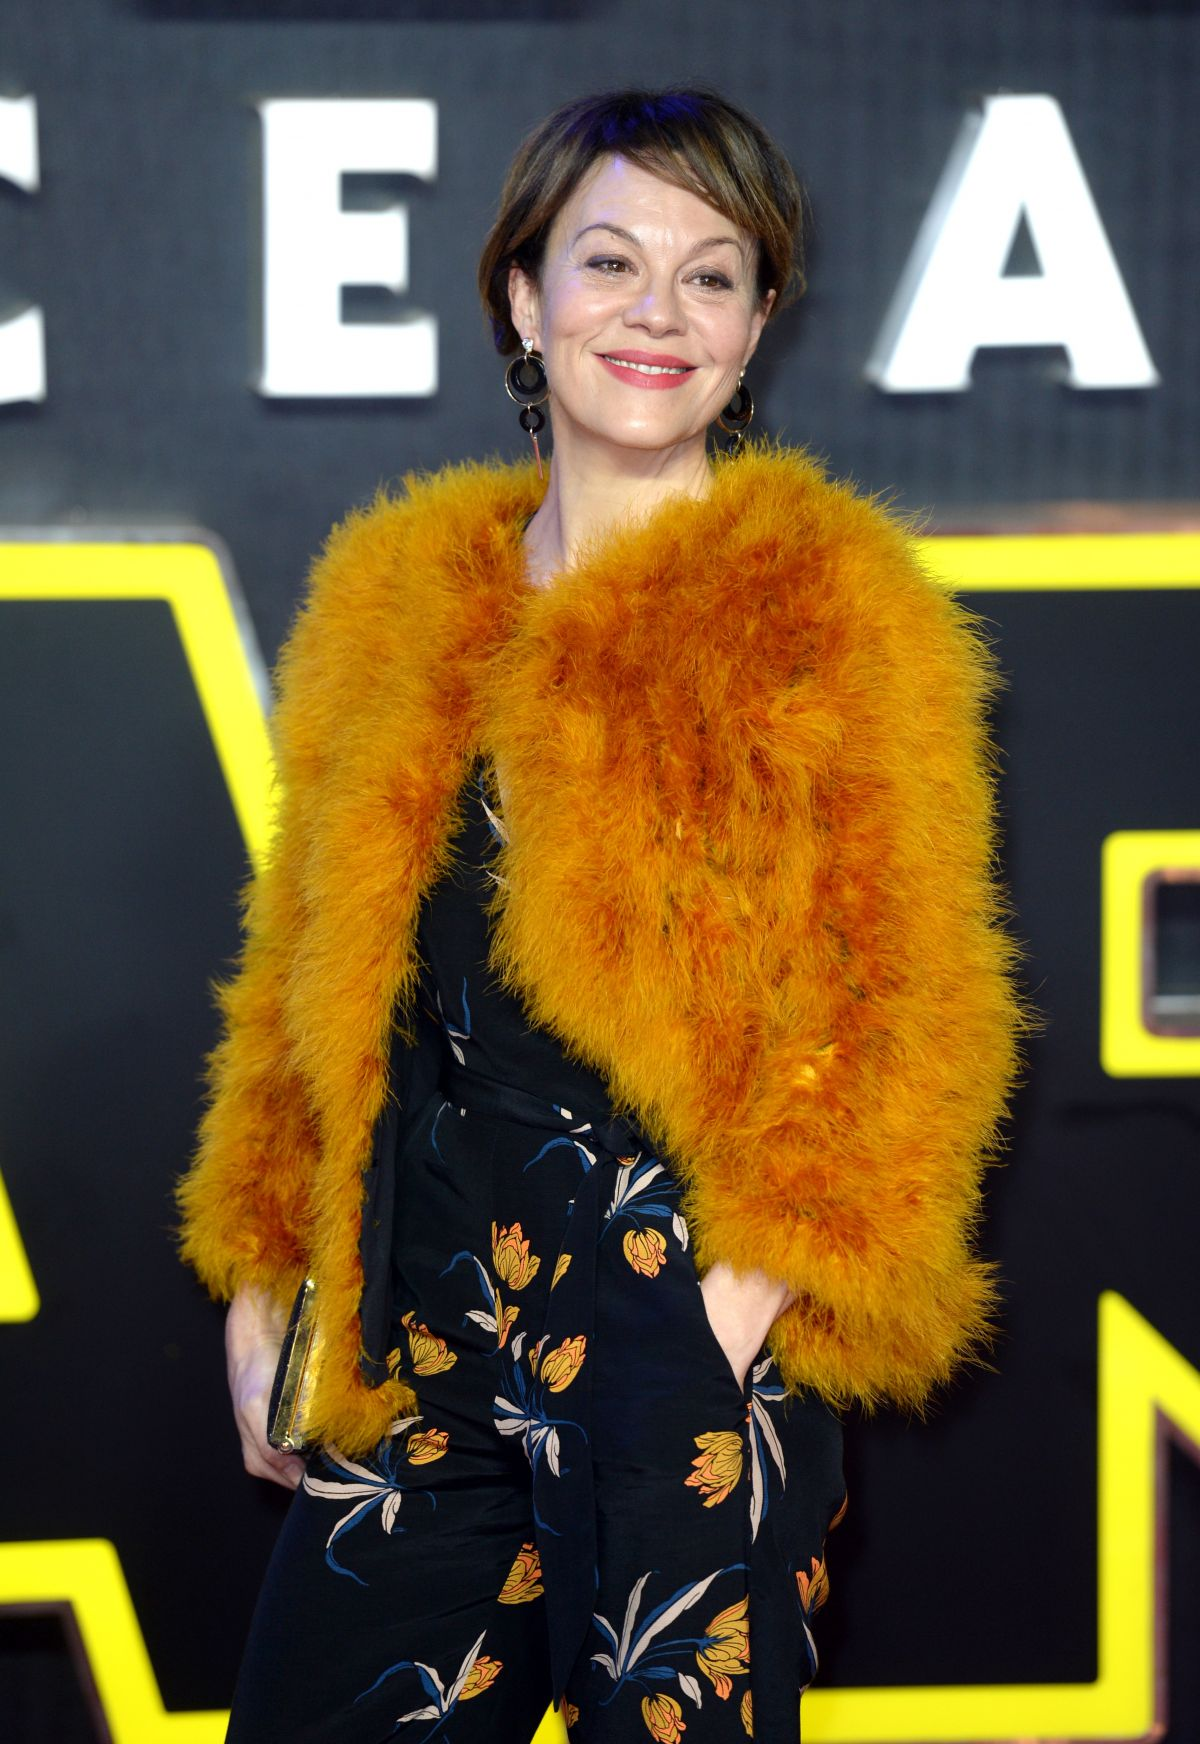 HELEN MCCRORY at Star Wars: The Force Awakens Premiere in London 12/16/2015